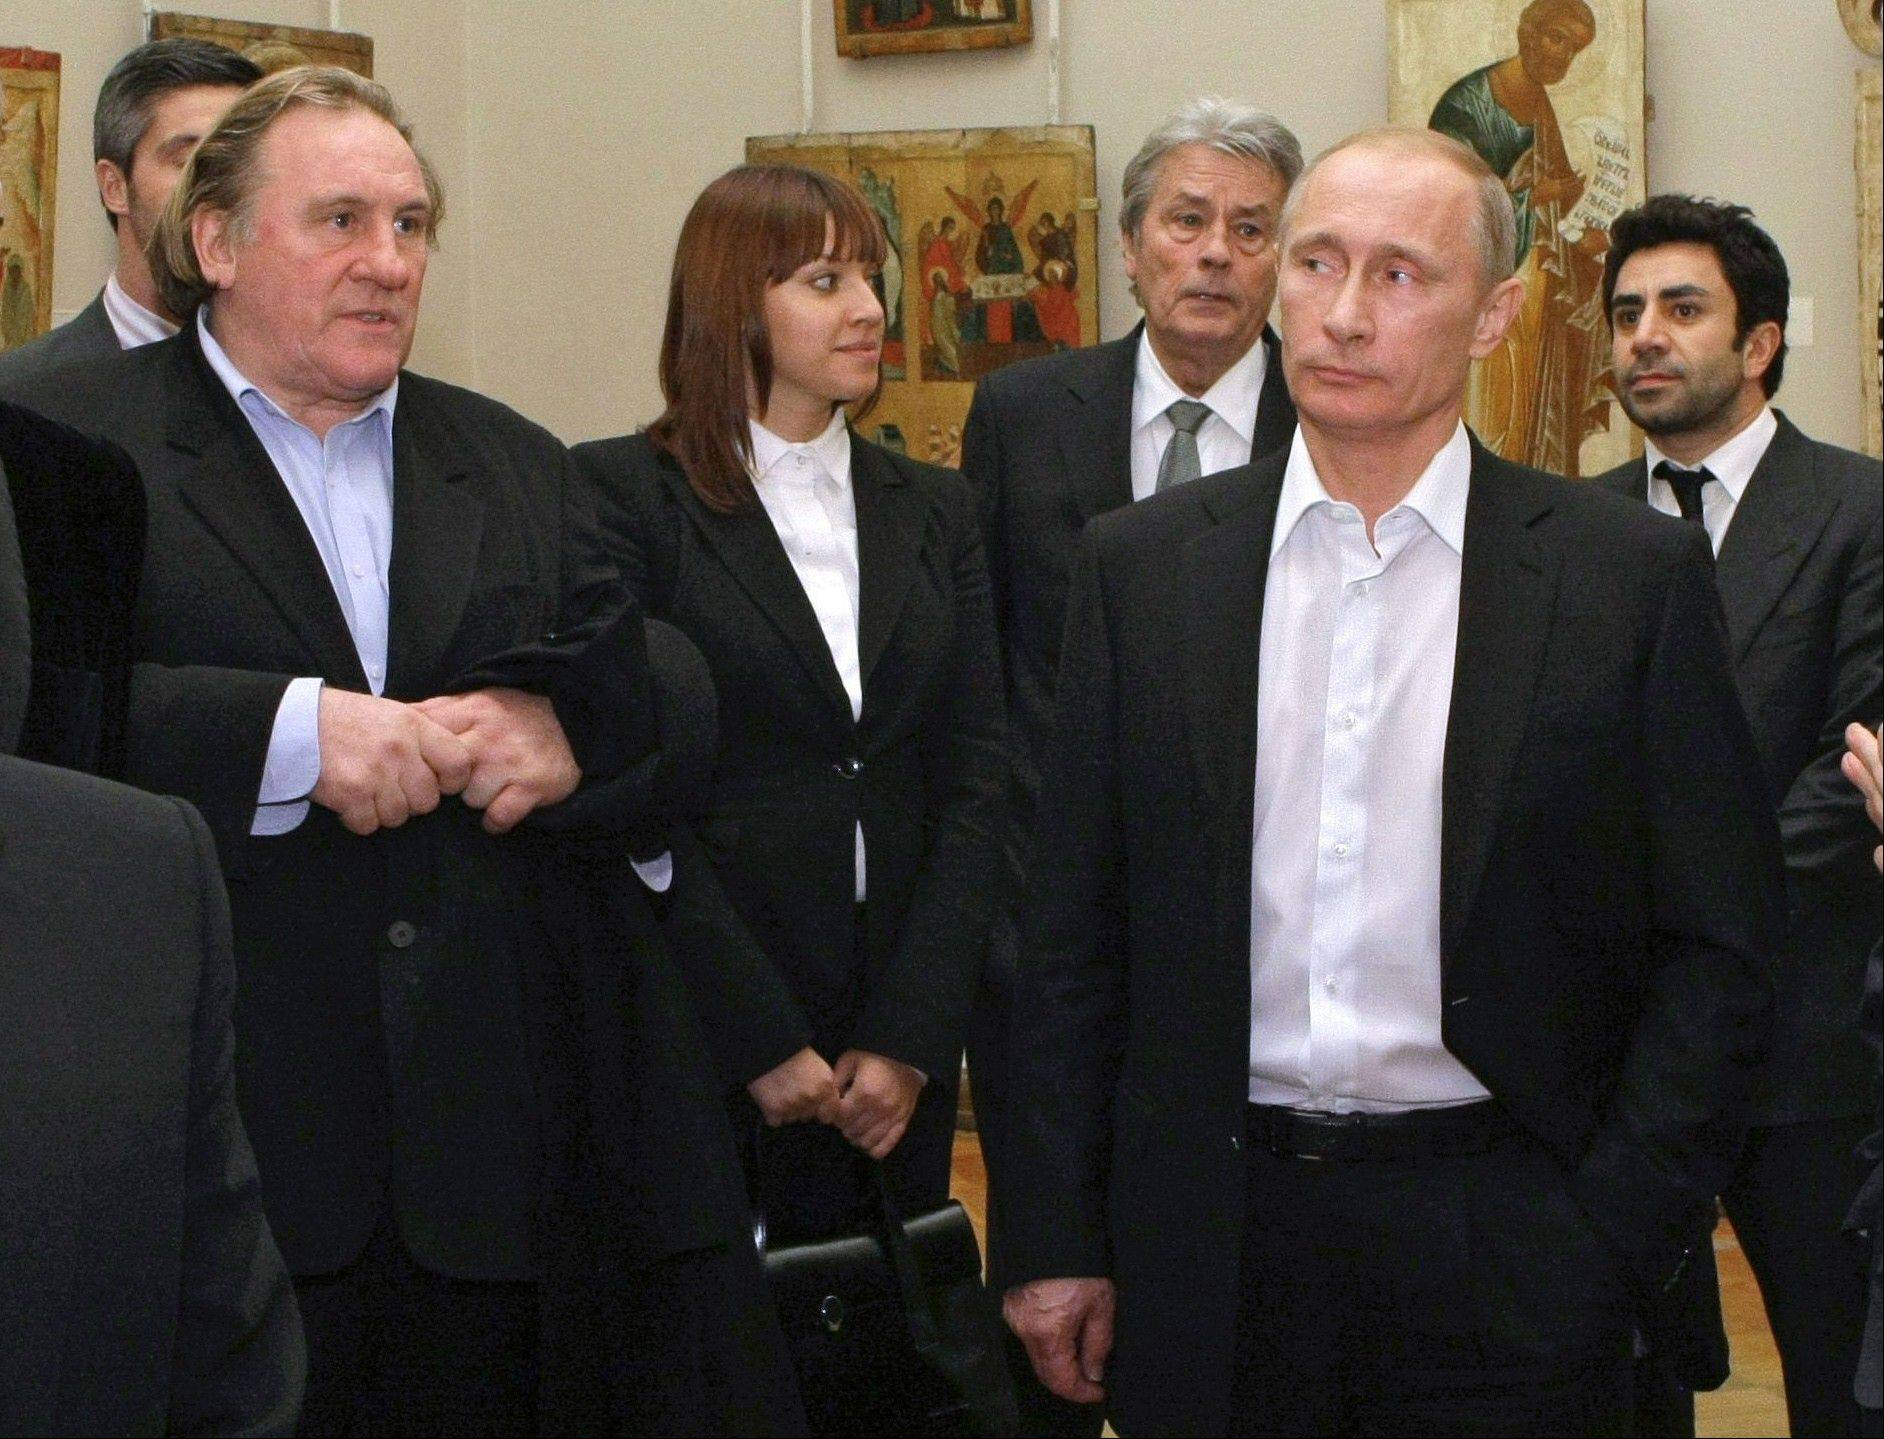 Russian Prime Minister Vladimir Putin, right, and French actor Gerard Depardieu, left, attend the Russian Museum, in St. Petersburg. Gerard Depardieu, the French actor who has been sparring with his native country over taxes, has been granted Russian citizenship. A brief announcement on the Kremlin website Thursday said President Vladimir Putin signed the citizenship grant.